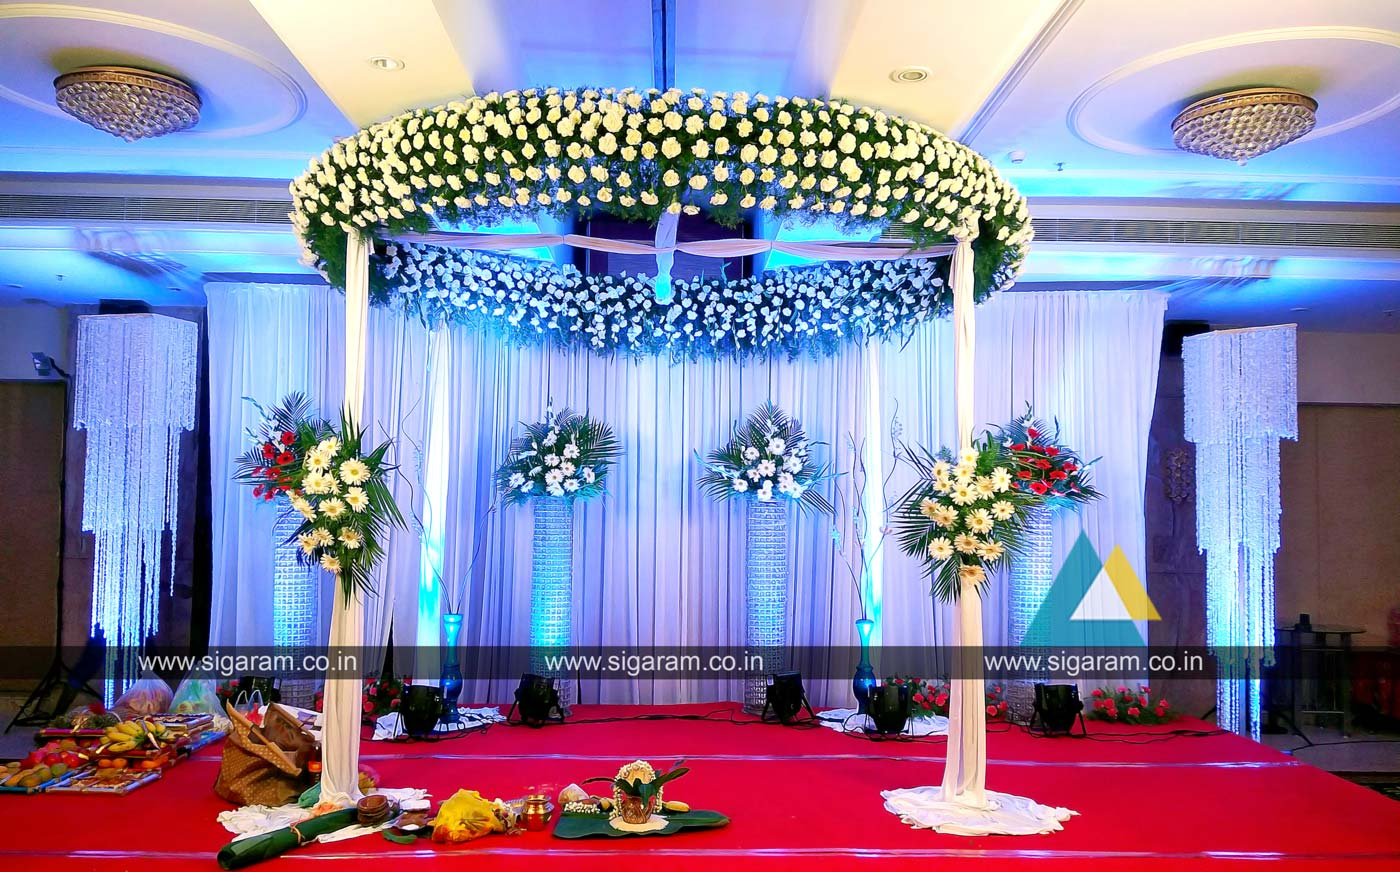 Reception and wedding stage decoration at accord hotel puducherry reception stage decoration accord hotel 3 junglespirit Choice Image